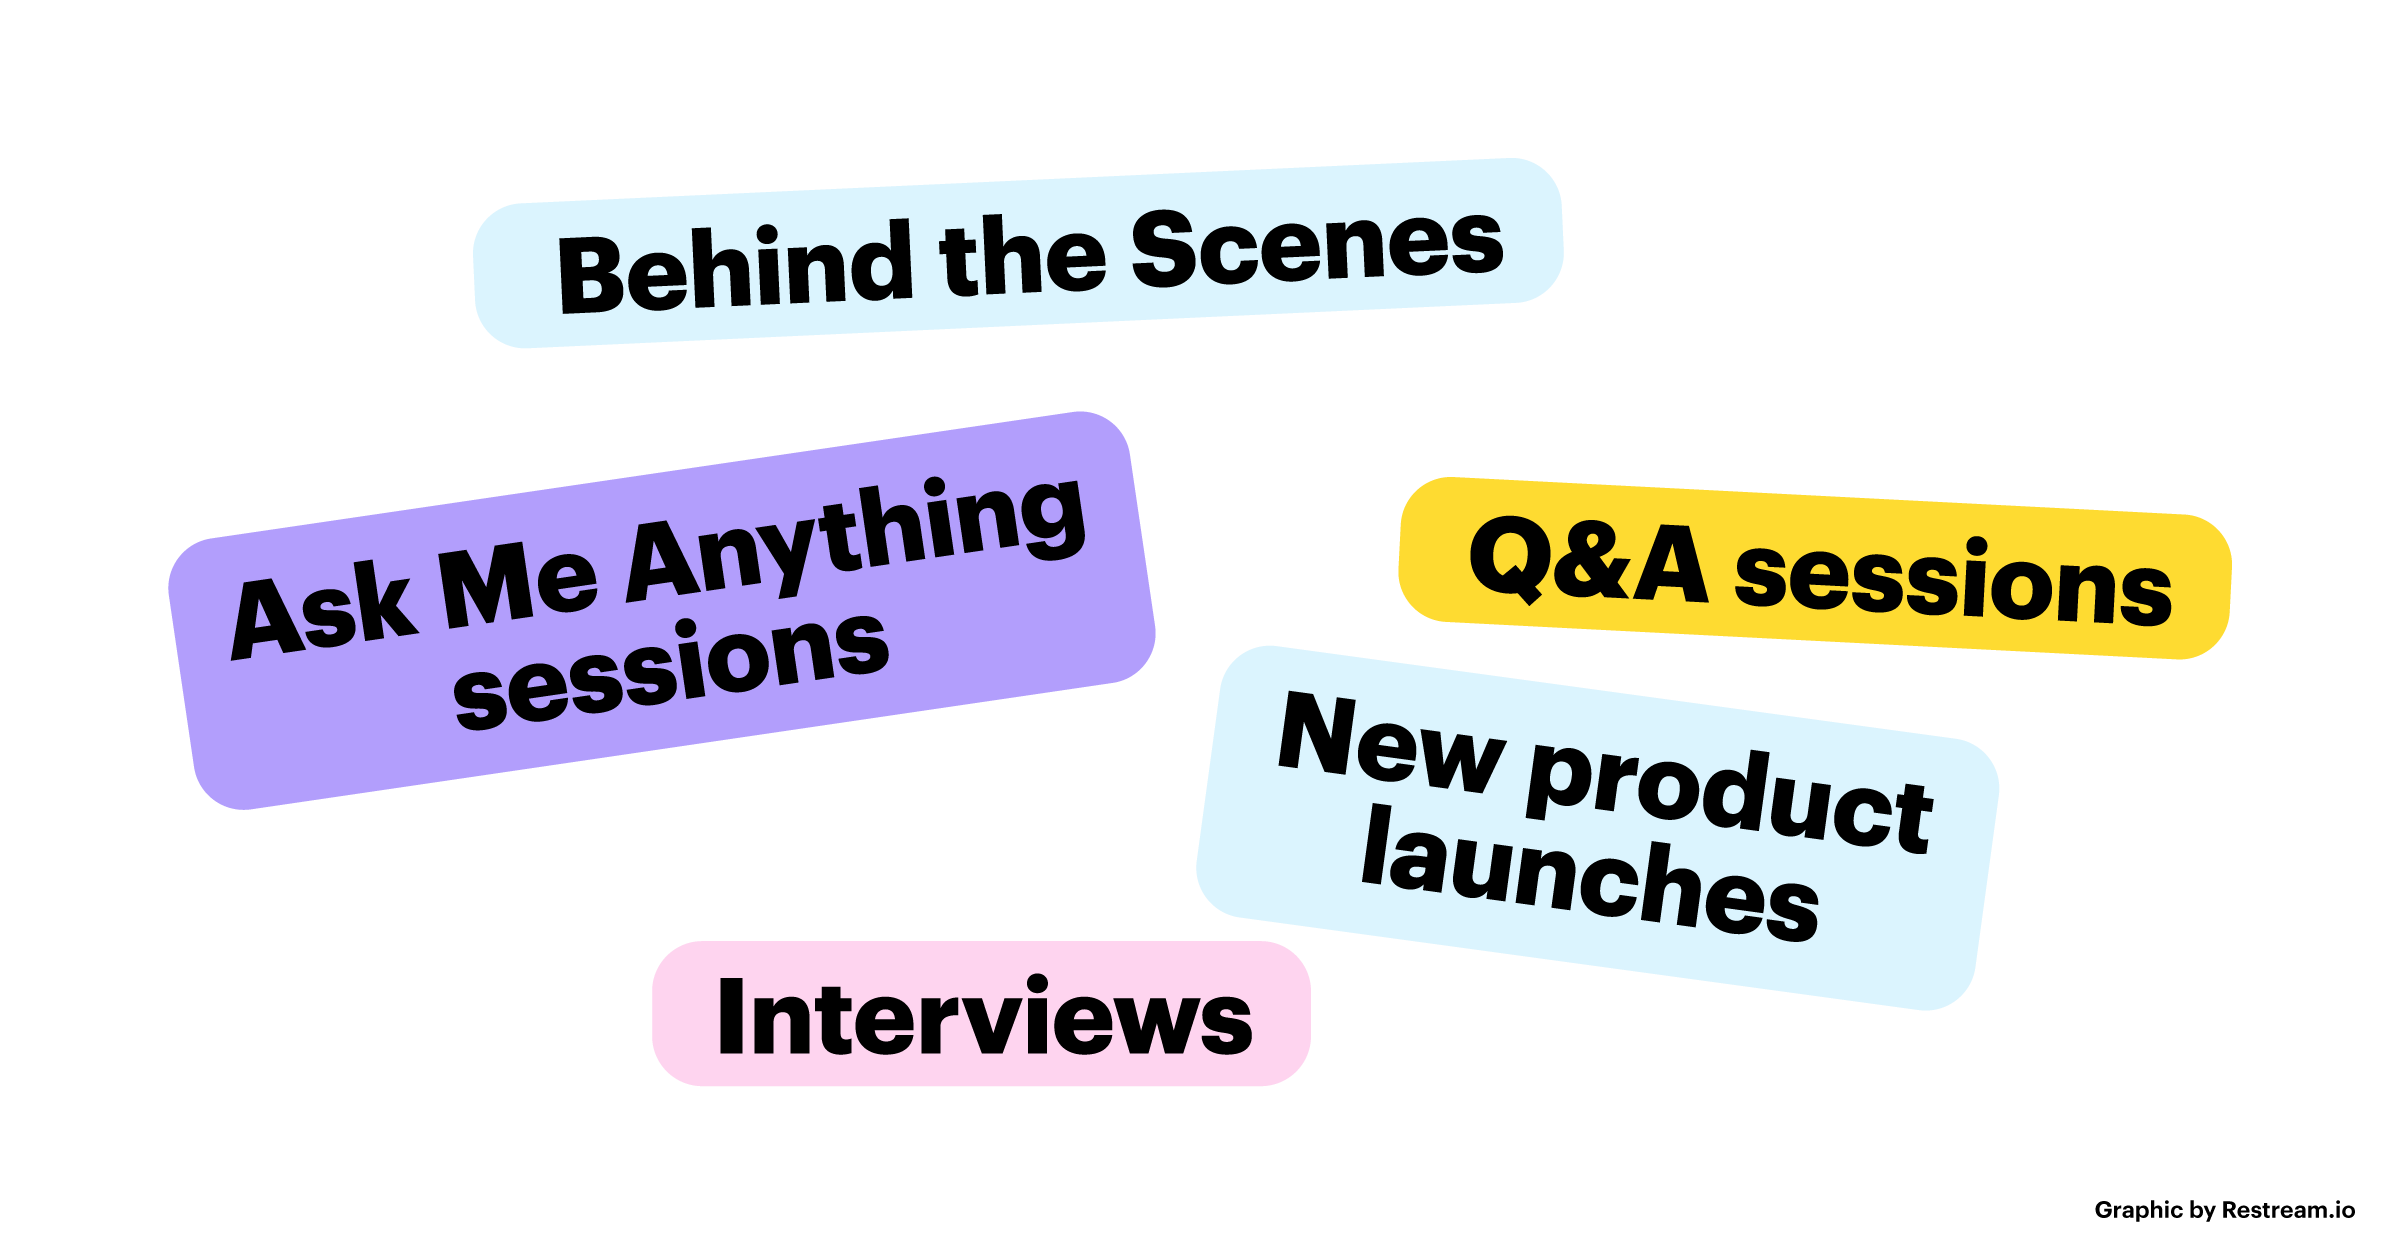 Behind the Scenes, Ask Me Anything sessions, Q&A sessions, New product launches, Interviews